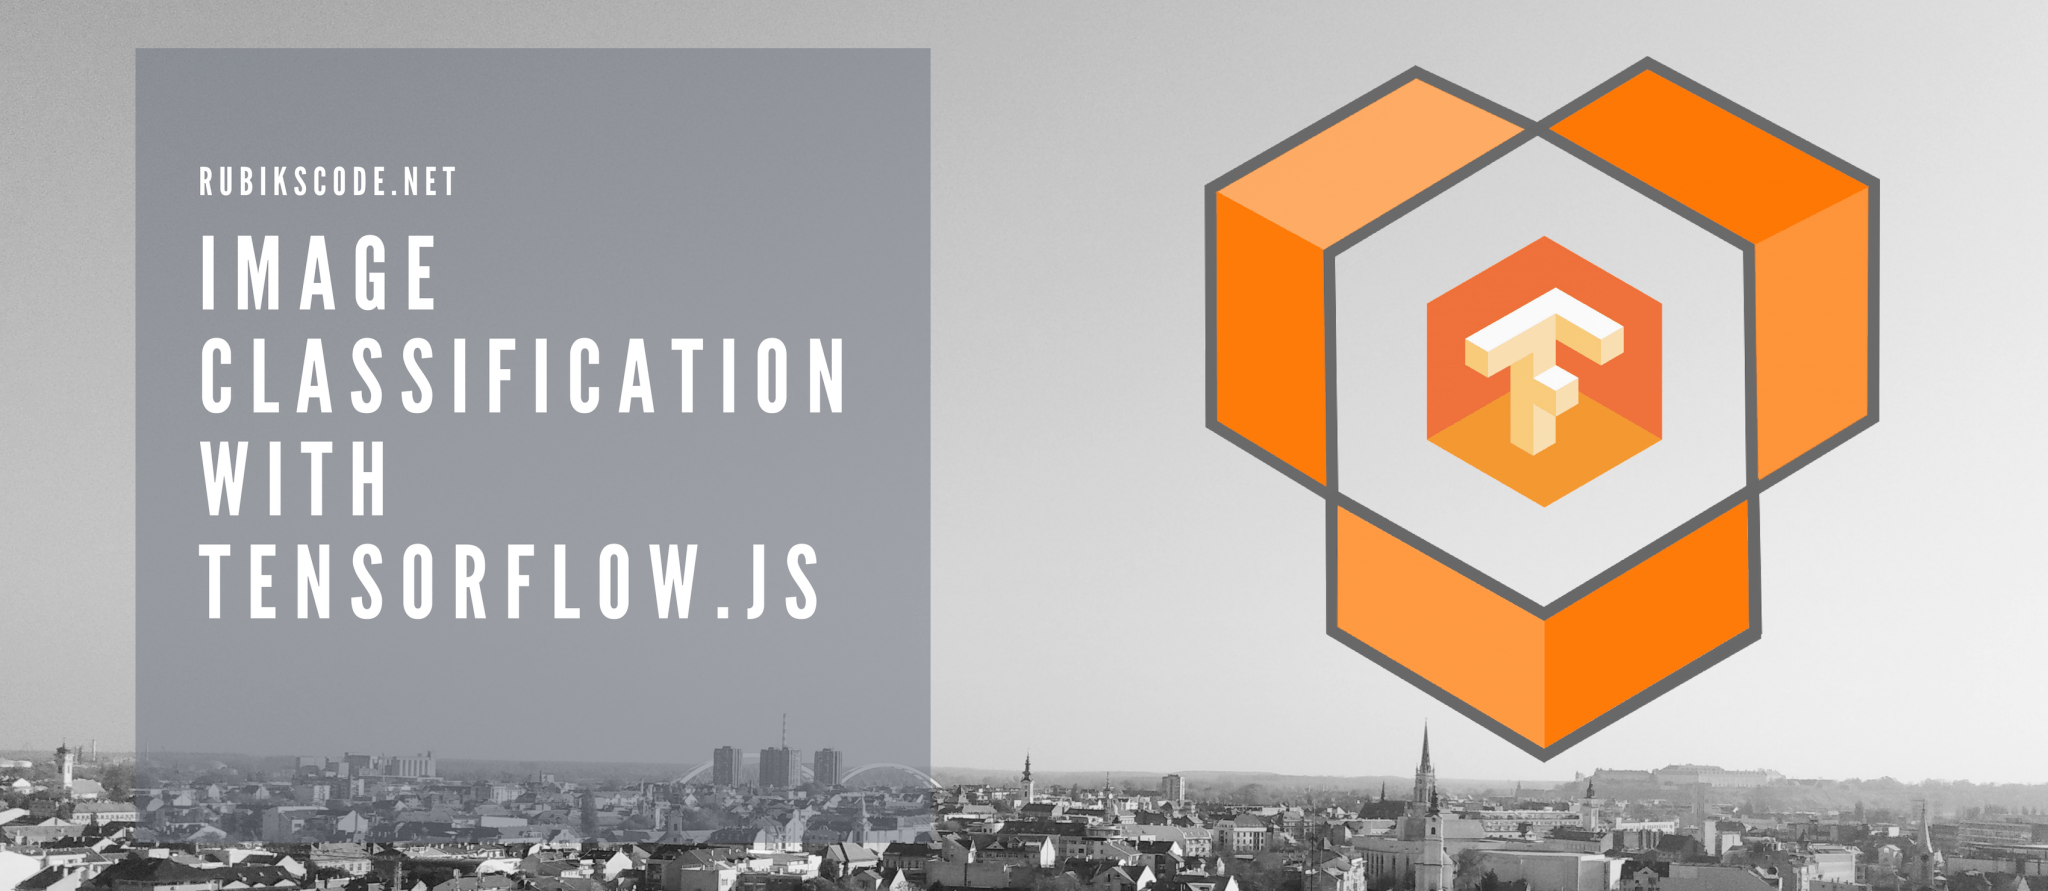 Image Classification With TensorFlow js